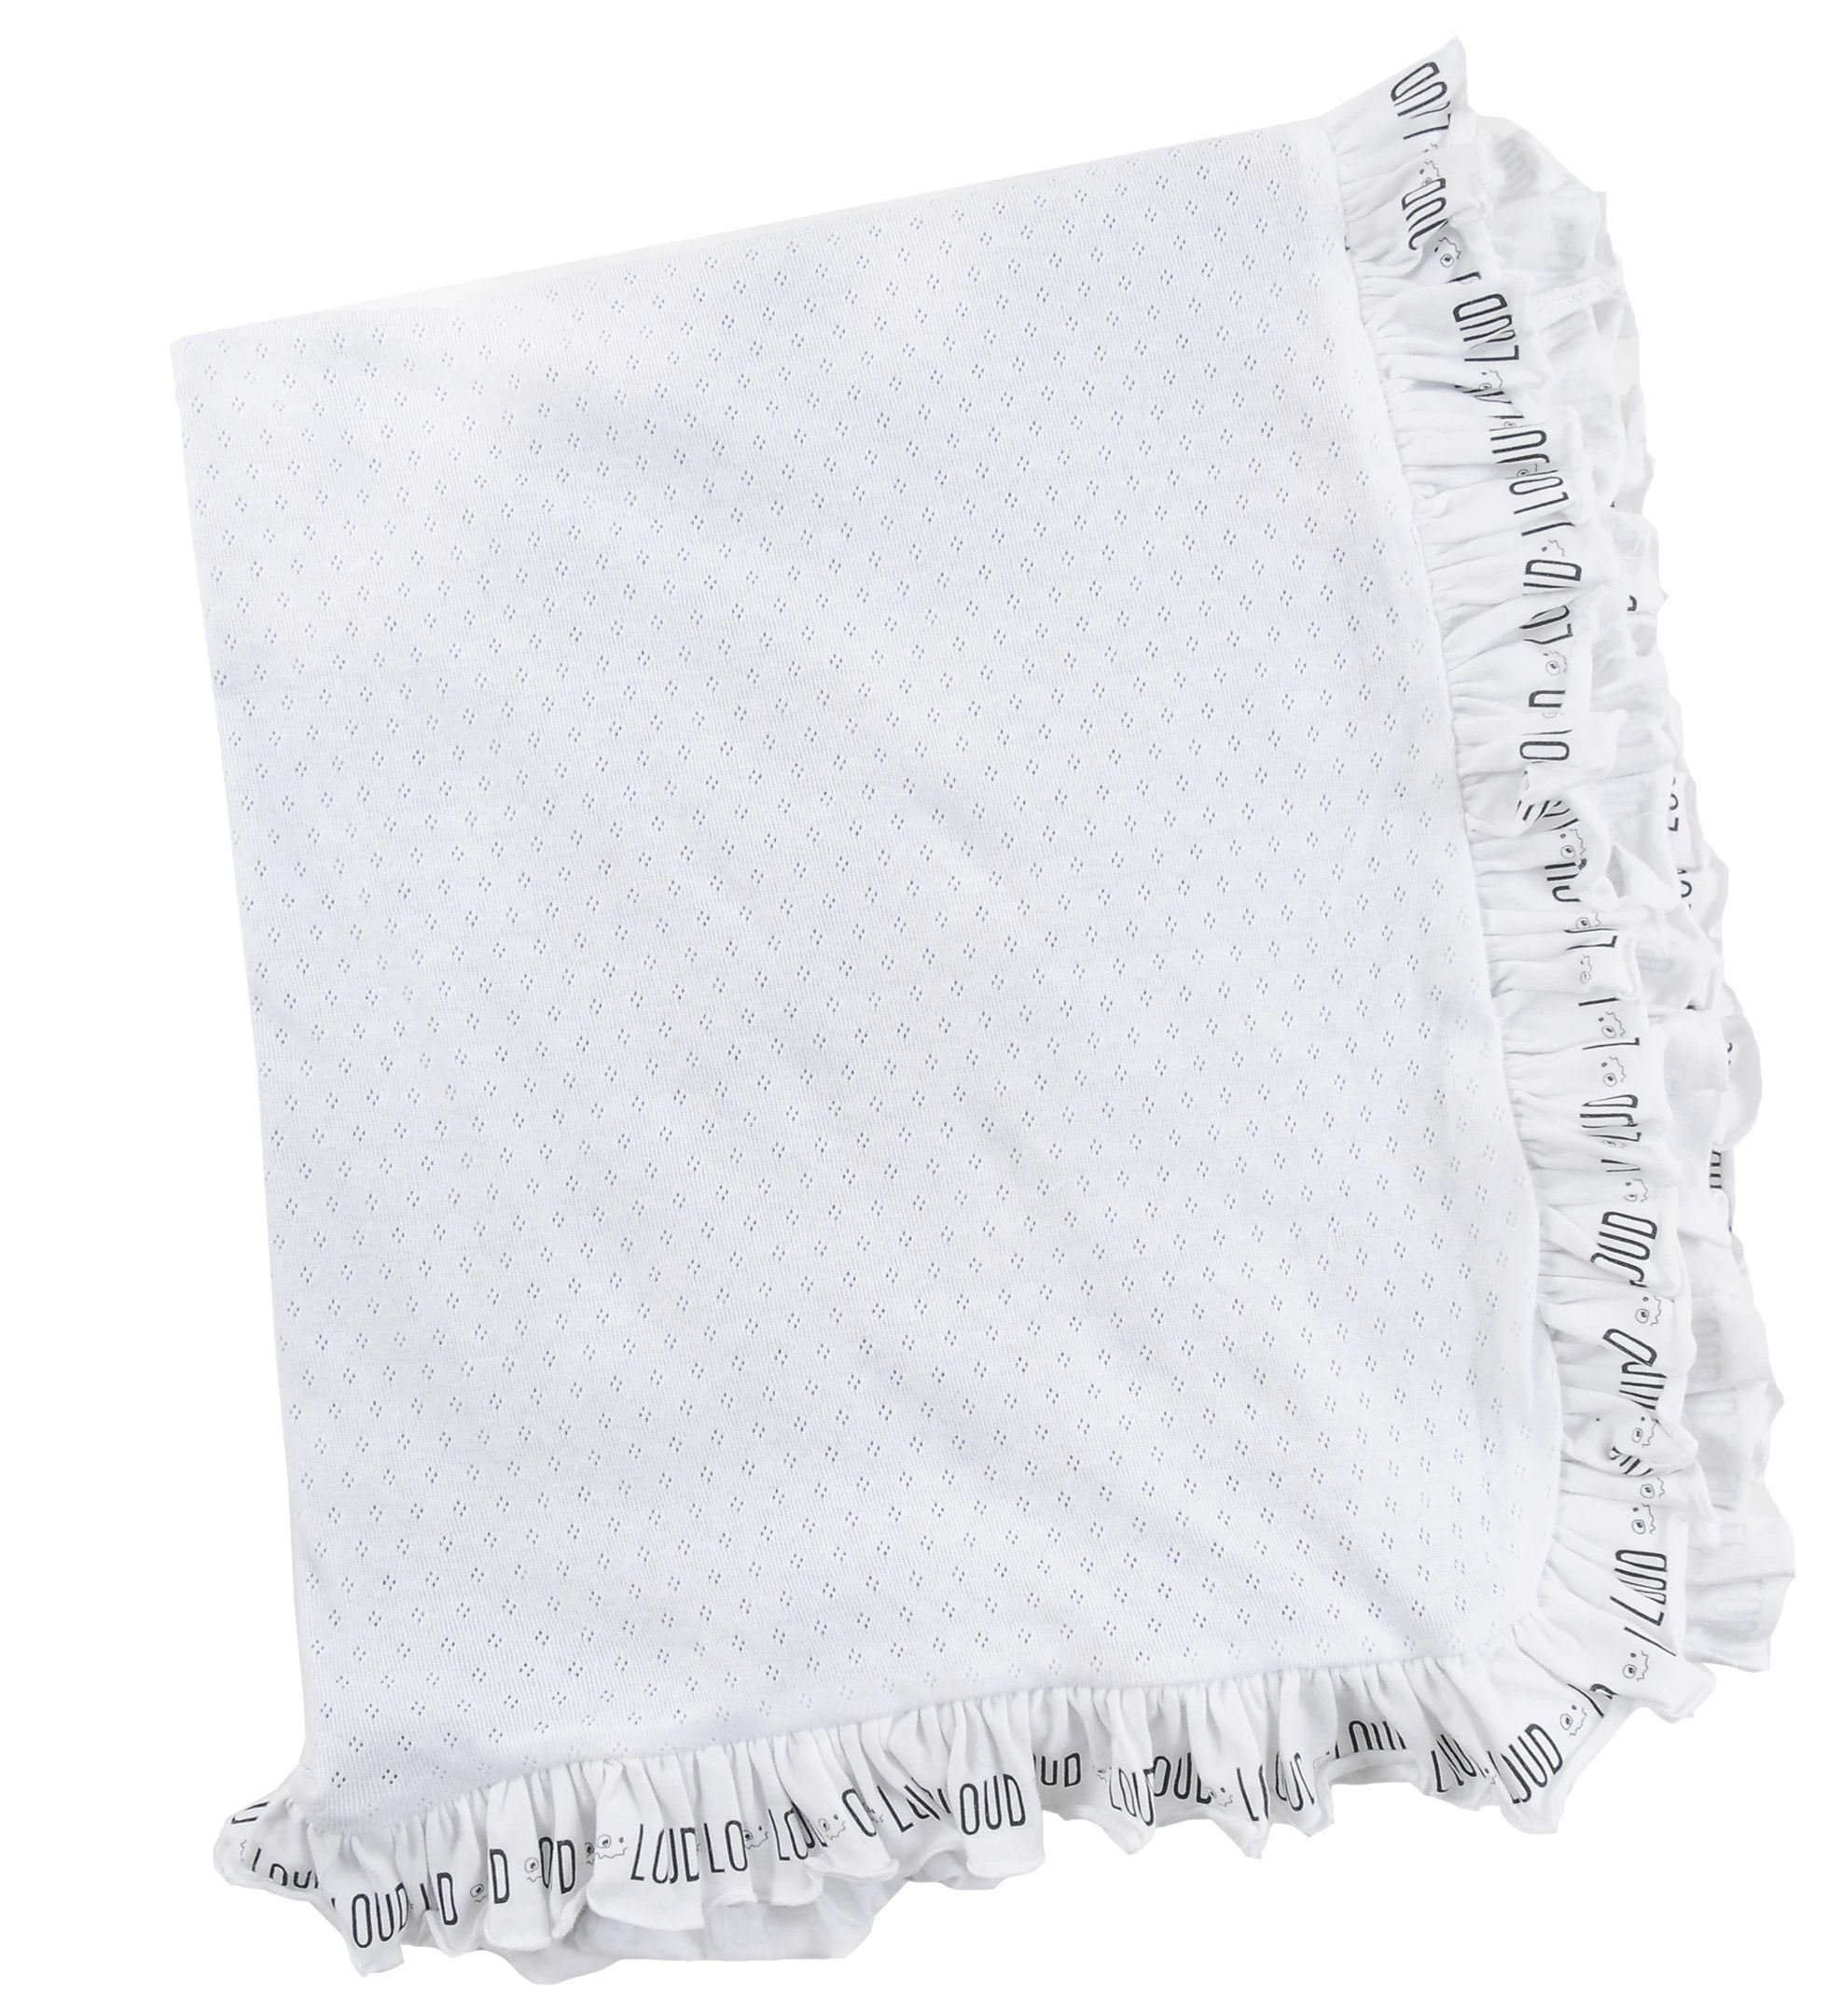 Loud Apparel Cuddle Ruffle Blanket